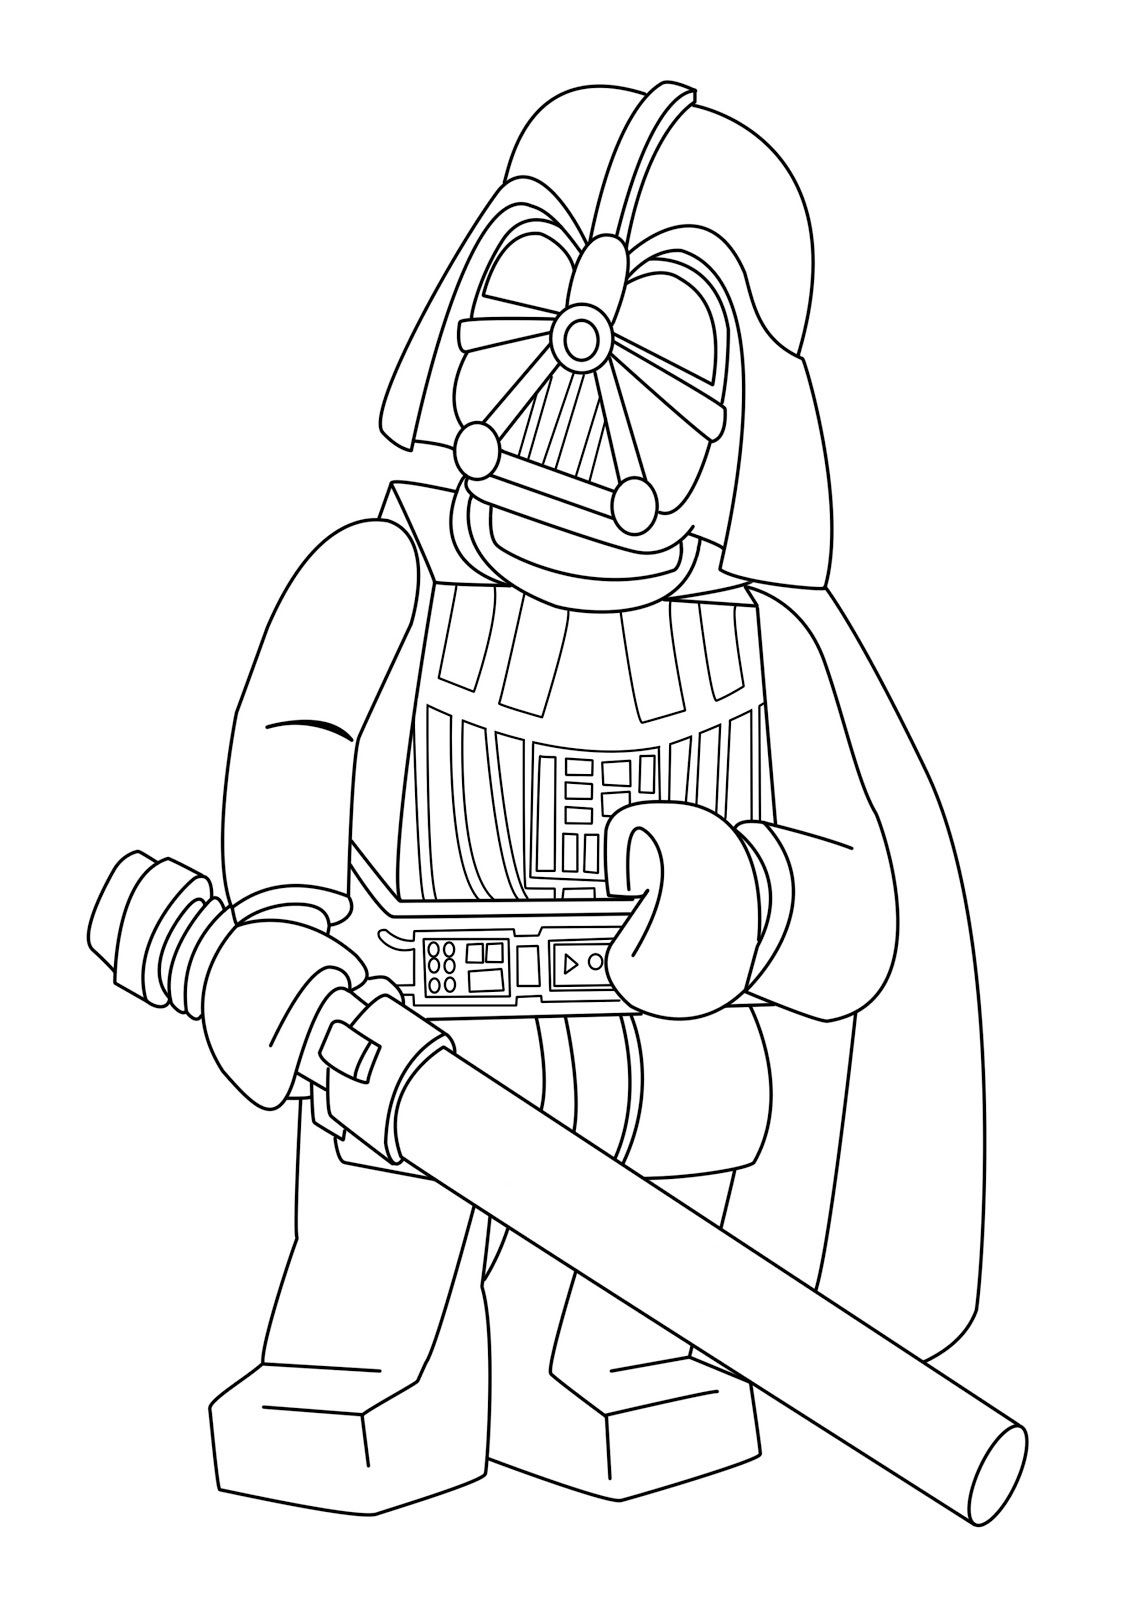 Lego Star Wars Coloring Pages Walzem Templates